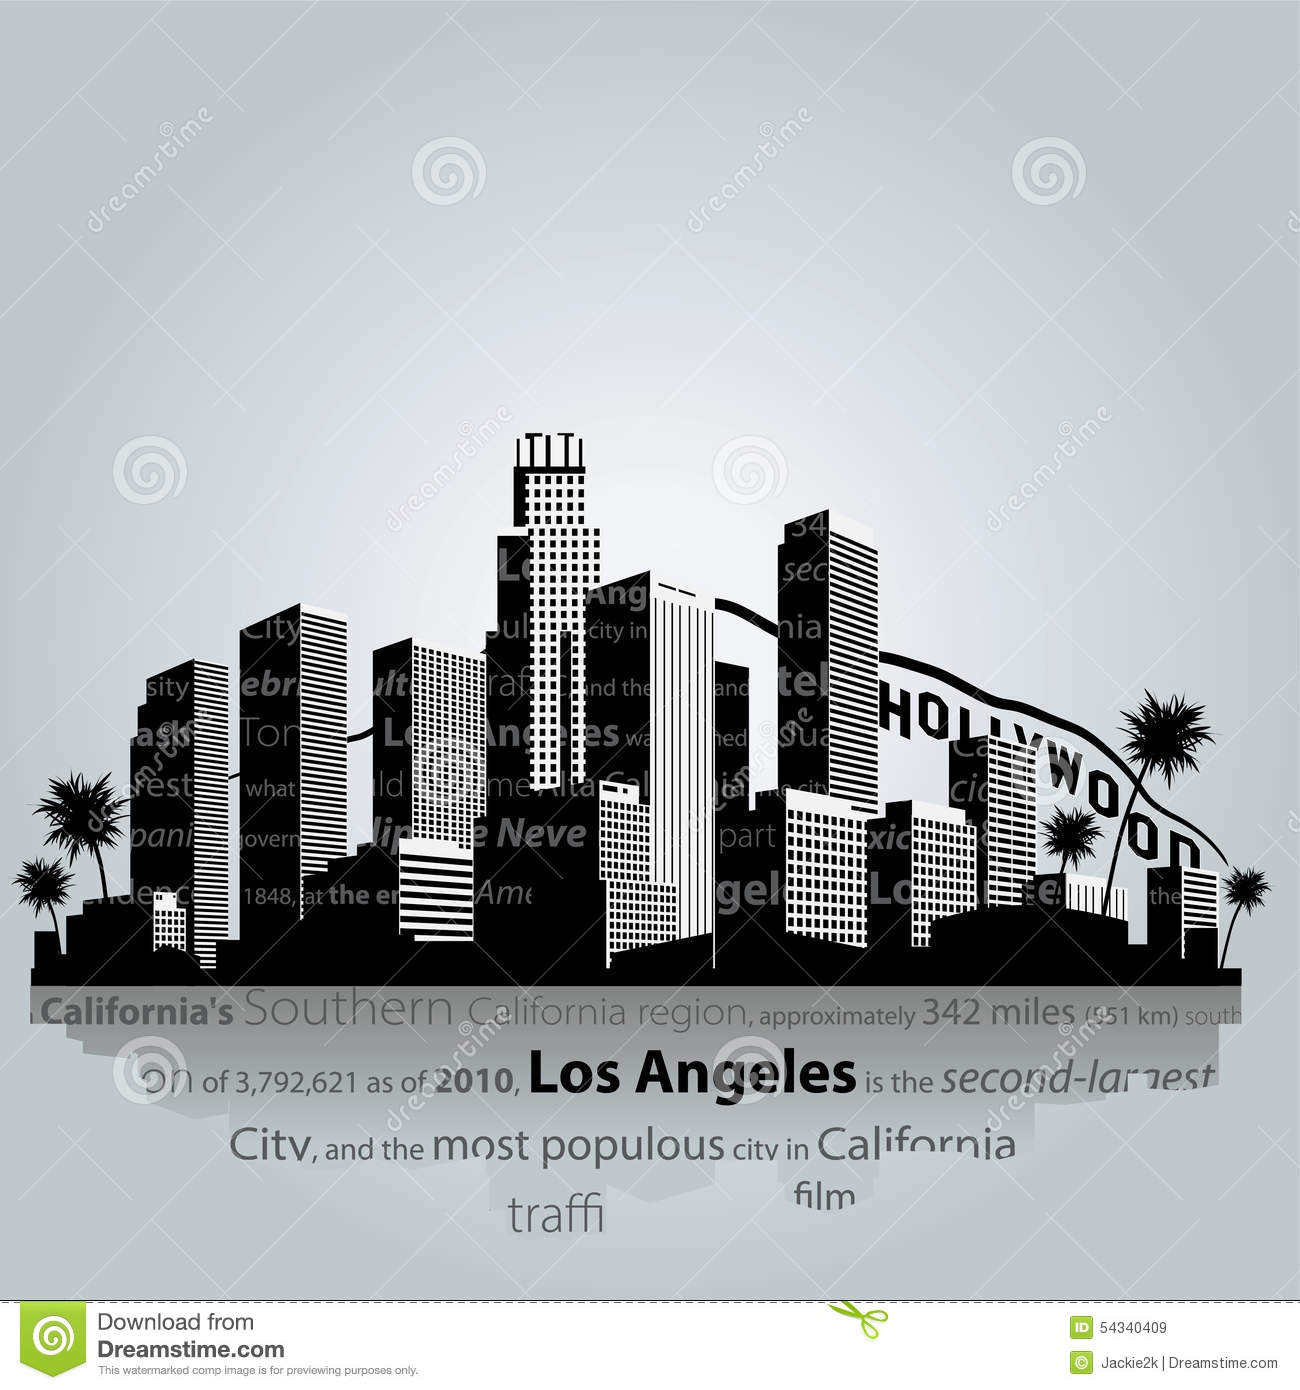 houston metro area with Stock Illustration Los Angeles City Silhouette Vector Illustration Image54340409 on With Interior Views Real Time Mobile Transit And Streetside For Mobile Bings Future And Ours Is Panoramic additionally Toronto Zoo additionally 1515 Self Storage Market In Dallas Fort Worth furthermore Piers Docks in addition Hull.